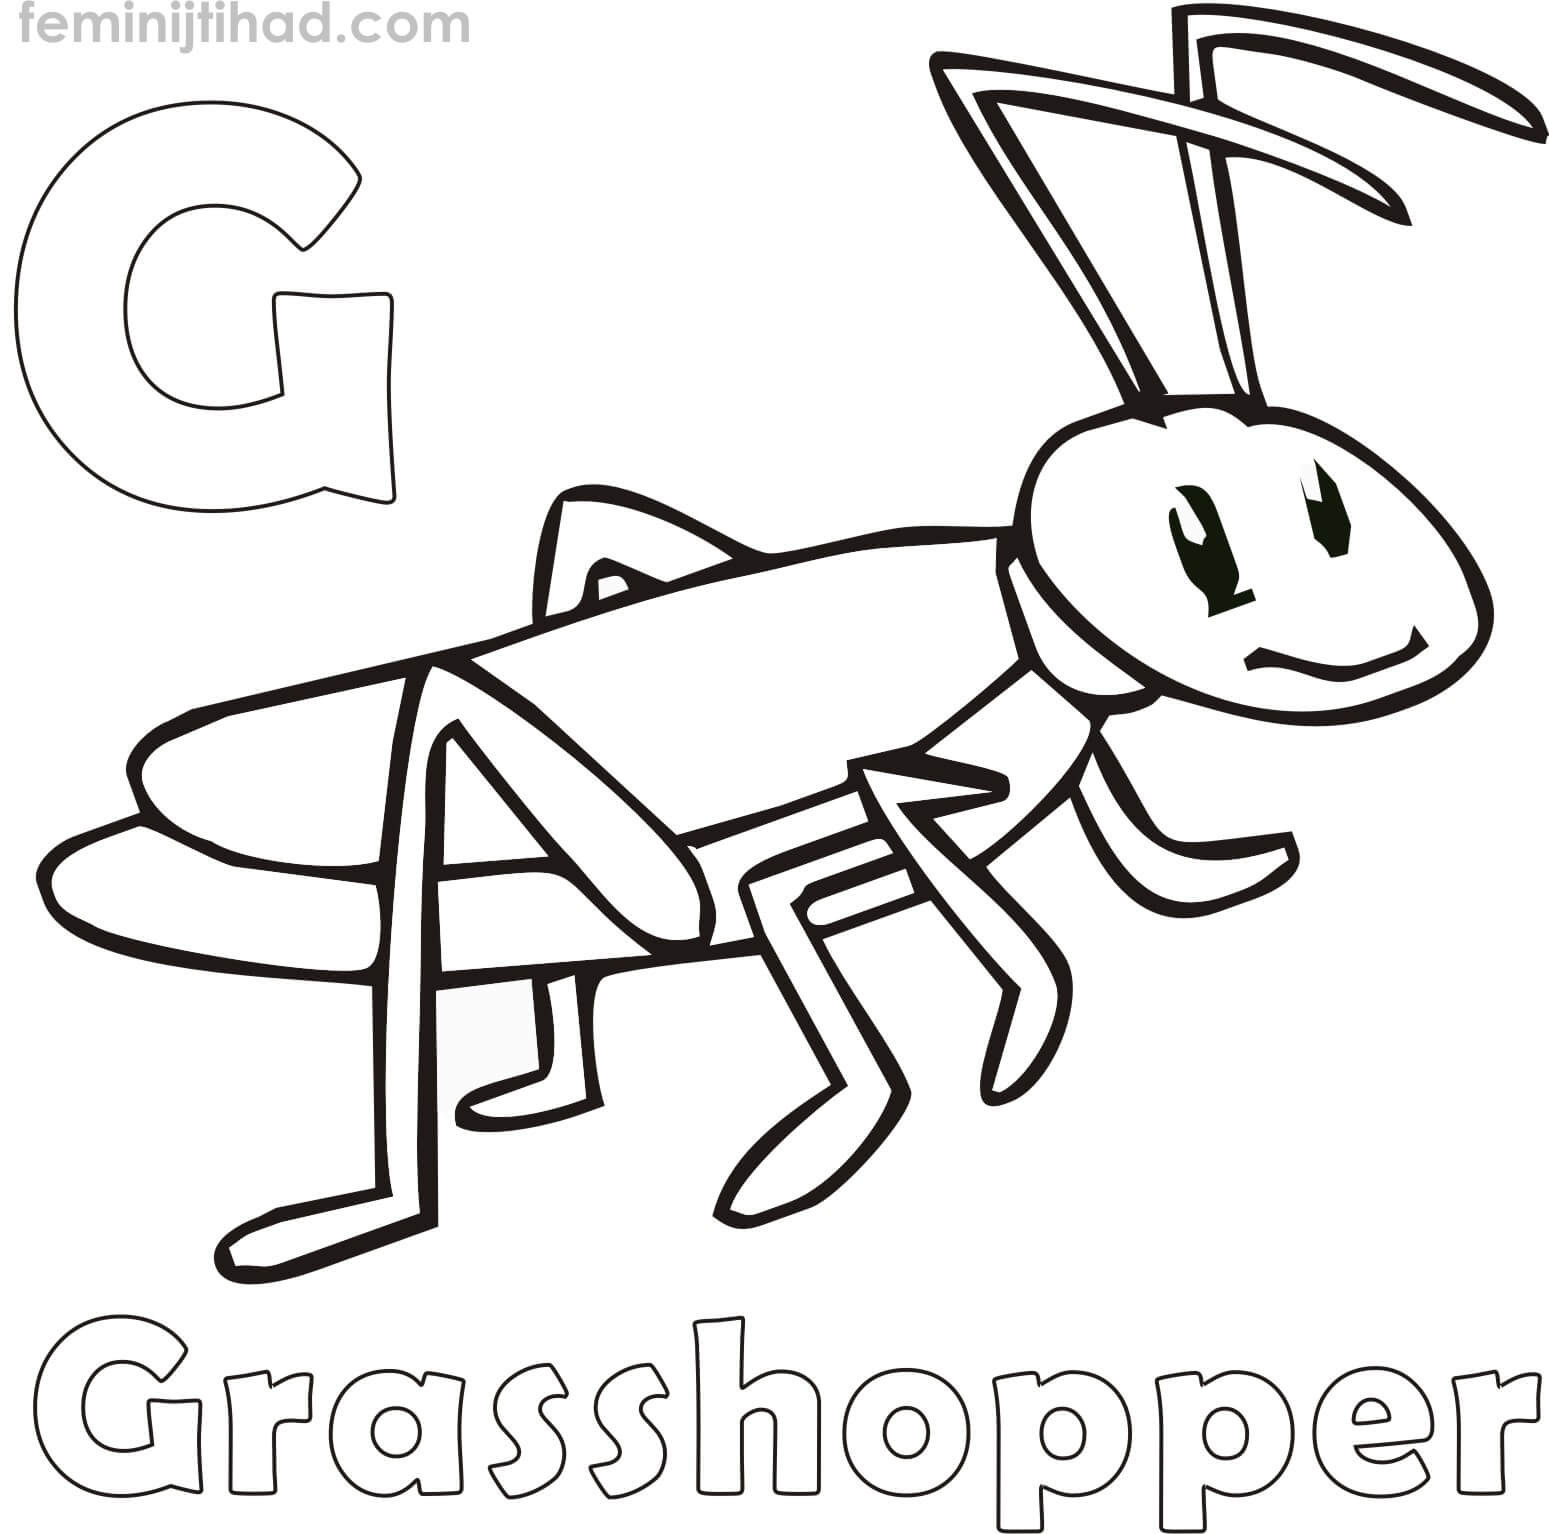 Grasshopper Coloring Pages For Kids At Getcolorings